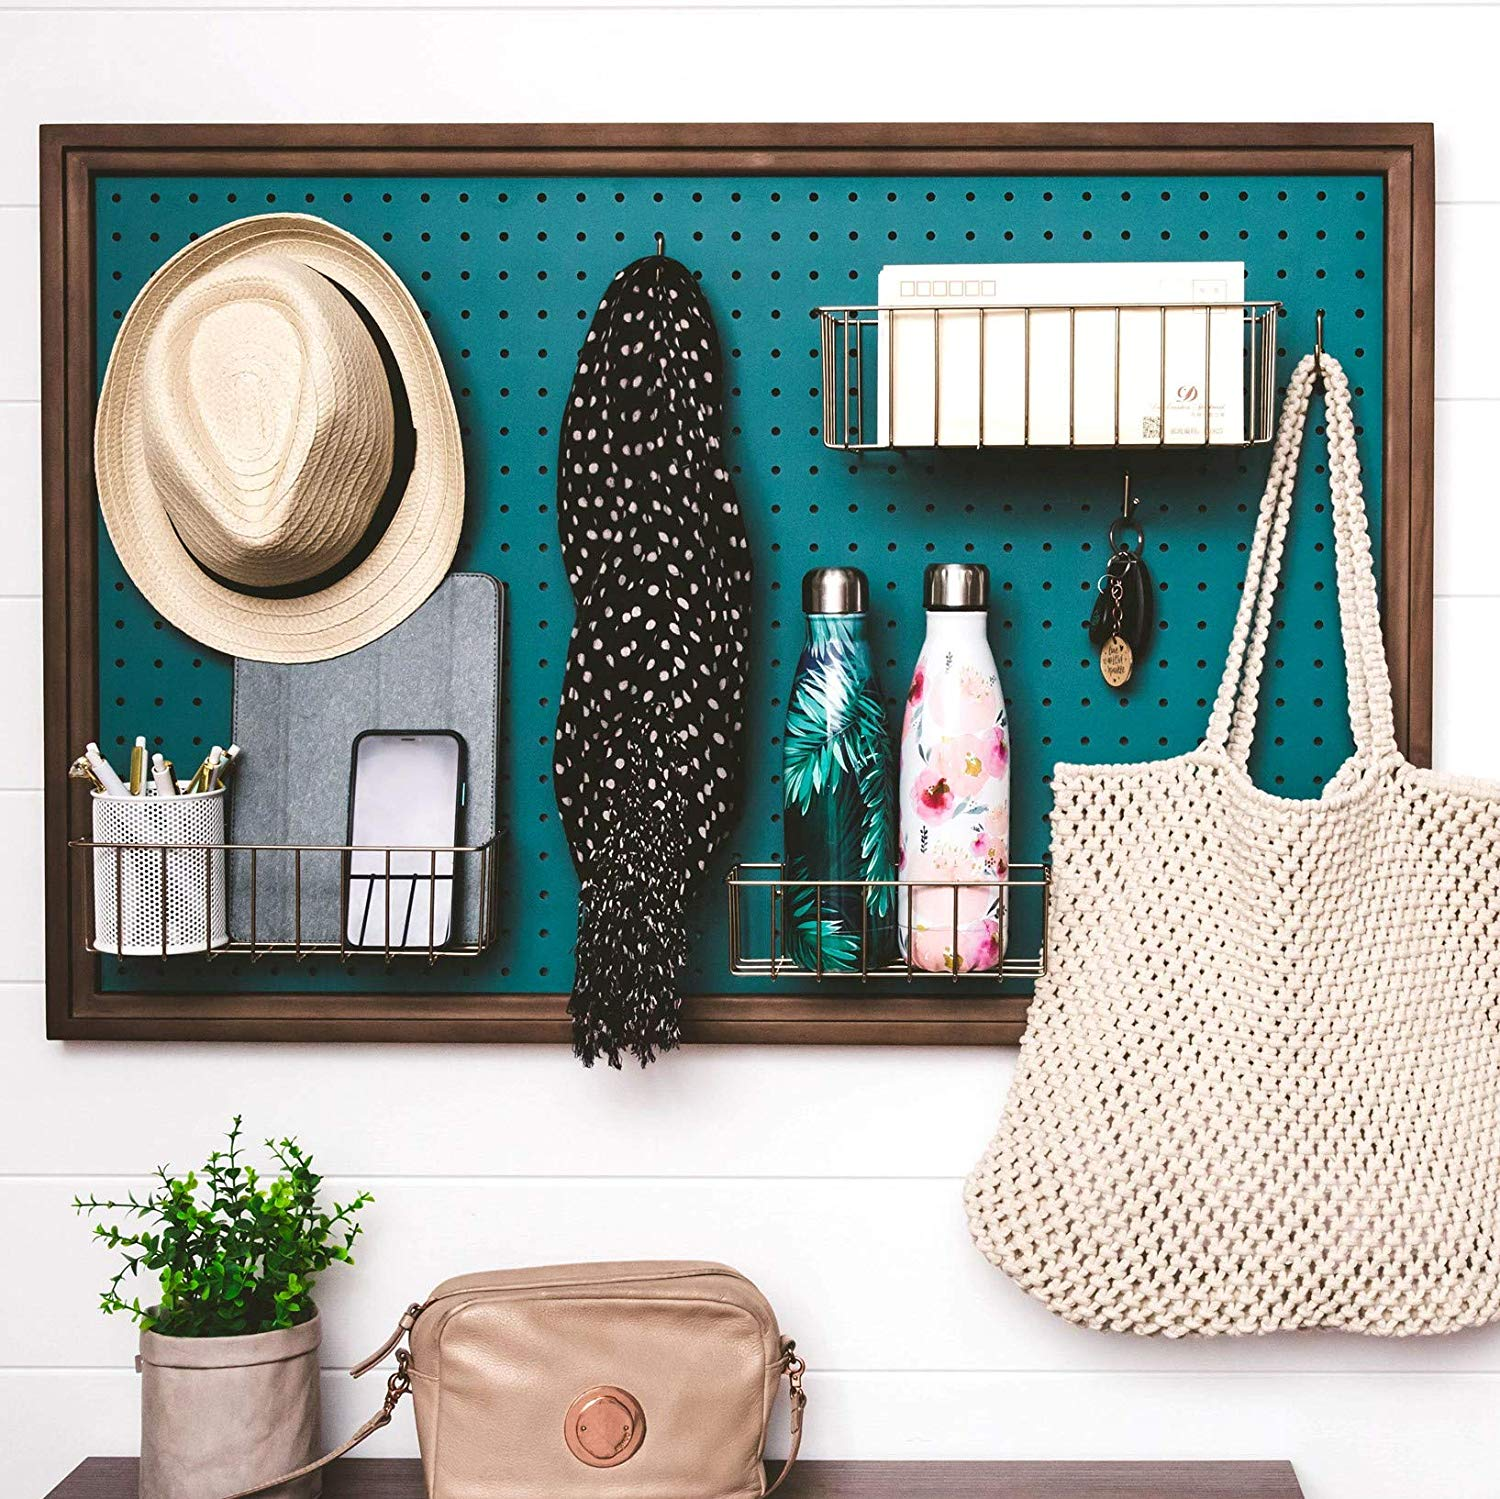 teal walnut pegboard - Add storage to any room with these 20 excellent wall organizers